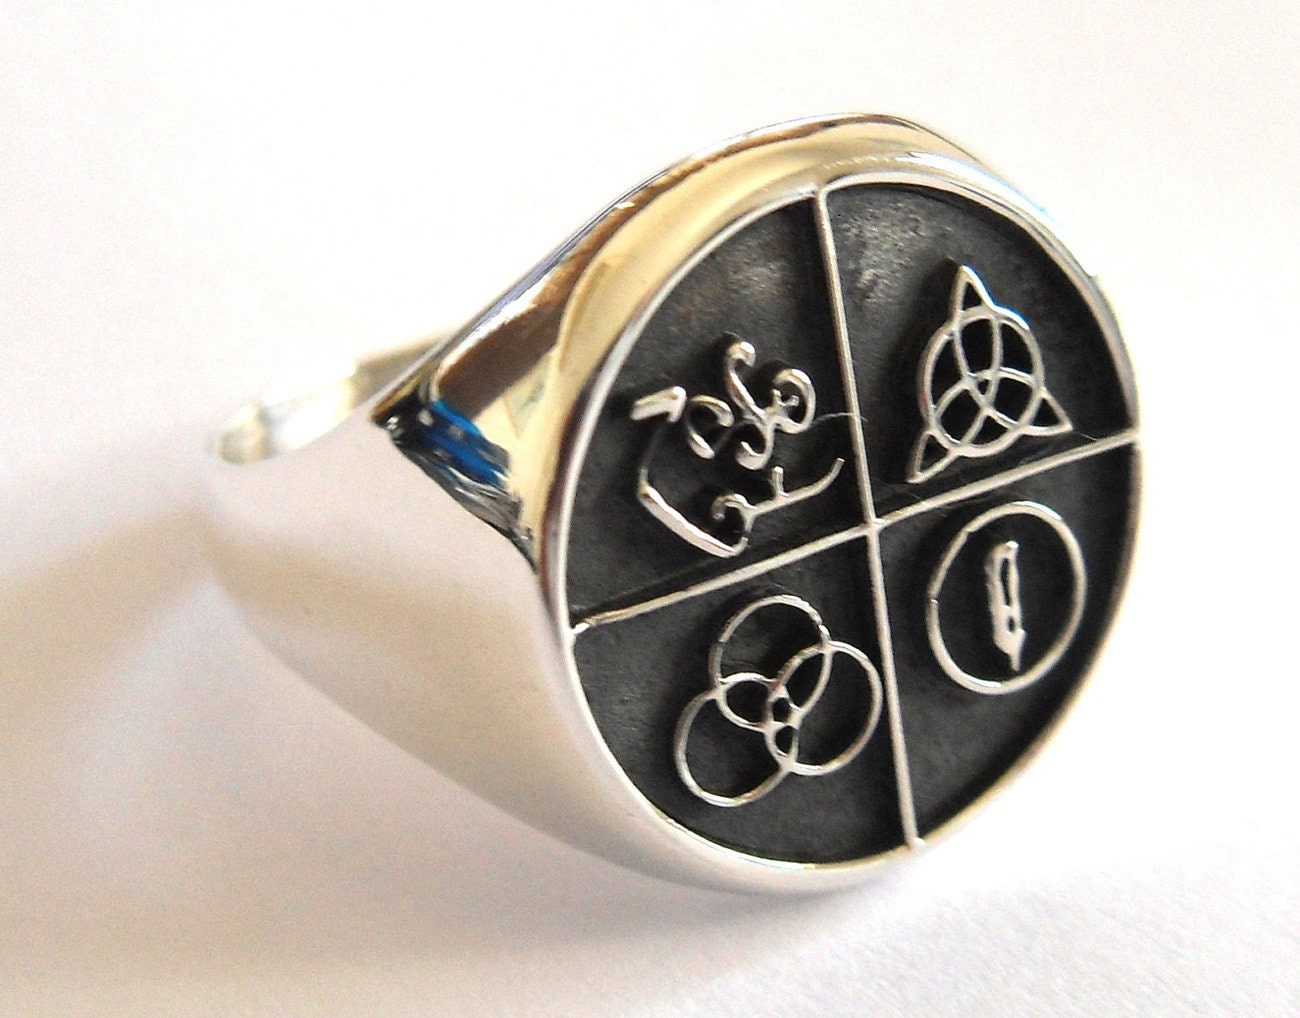 Led zeppelin band four symbol silver 925 ring description led zeppelin band four symbol biocorpaavc